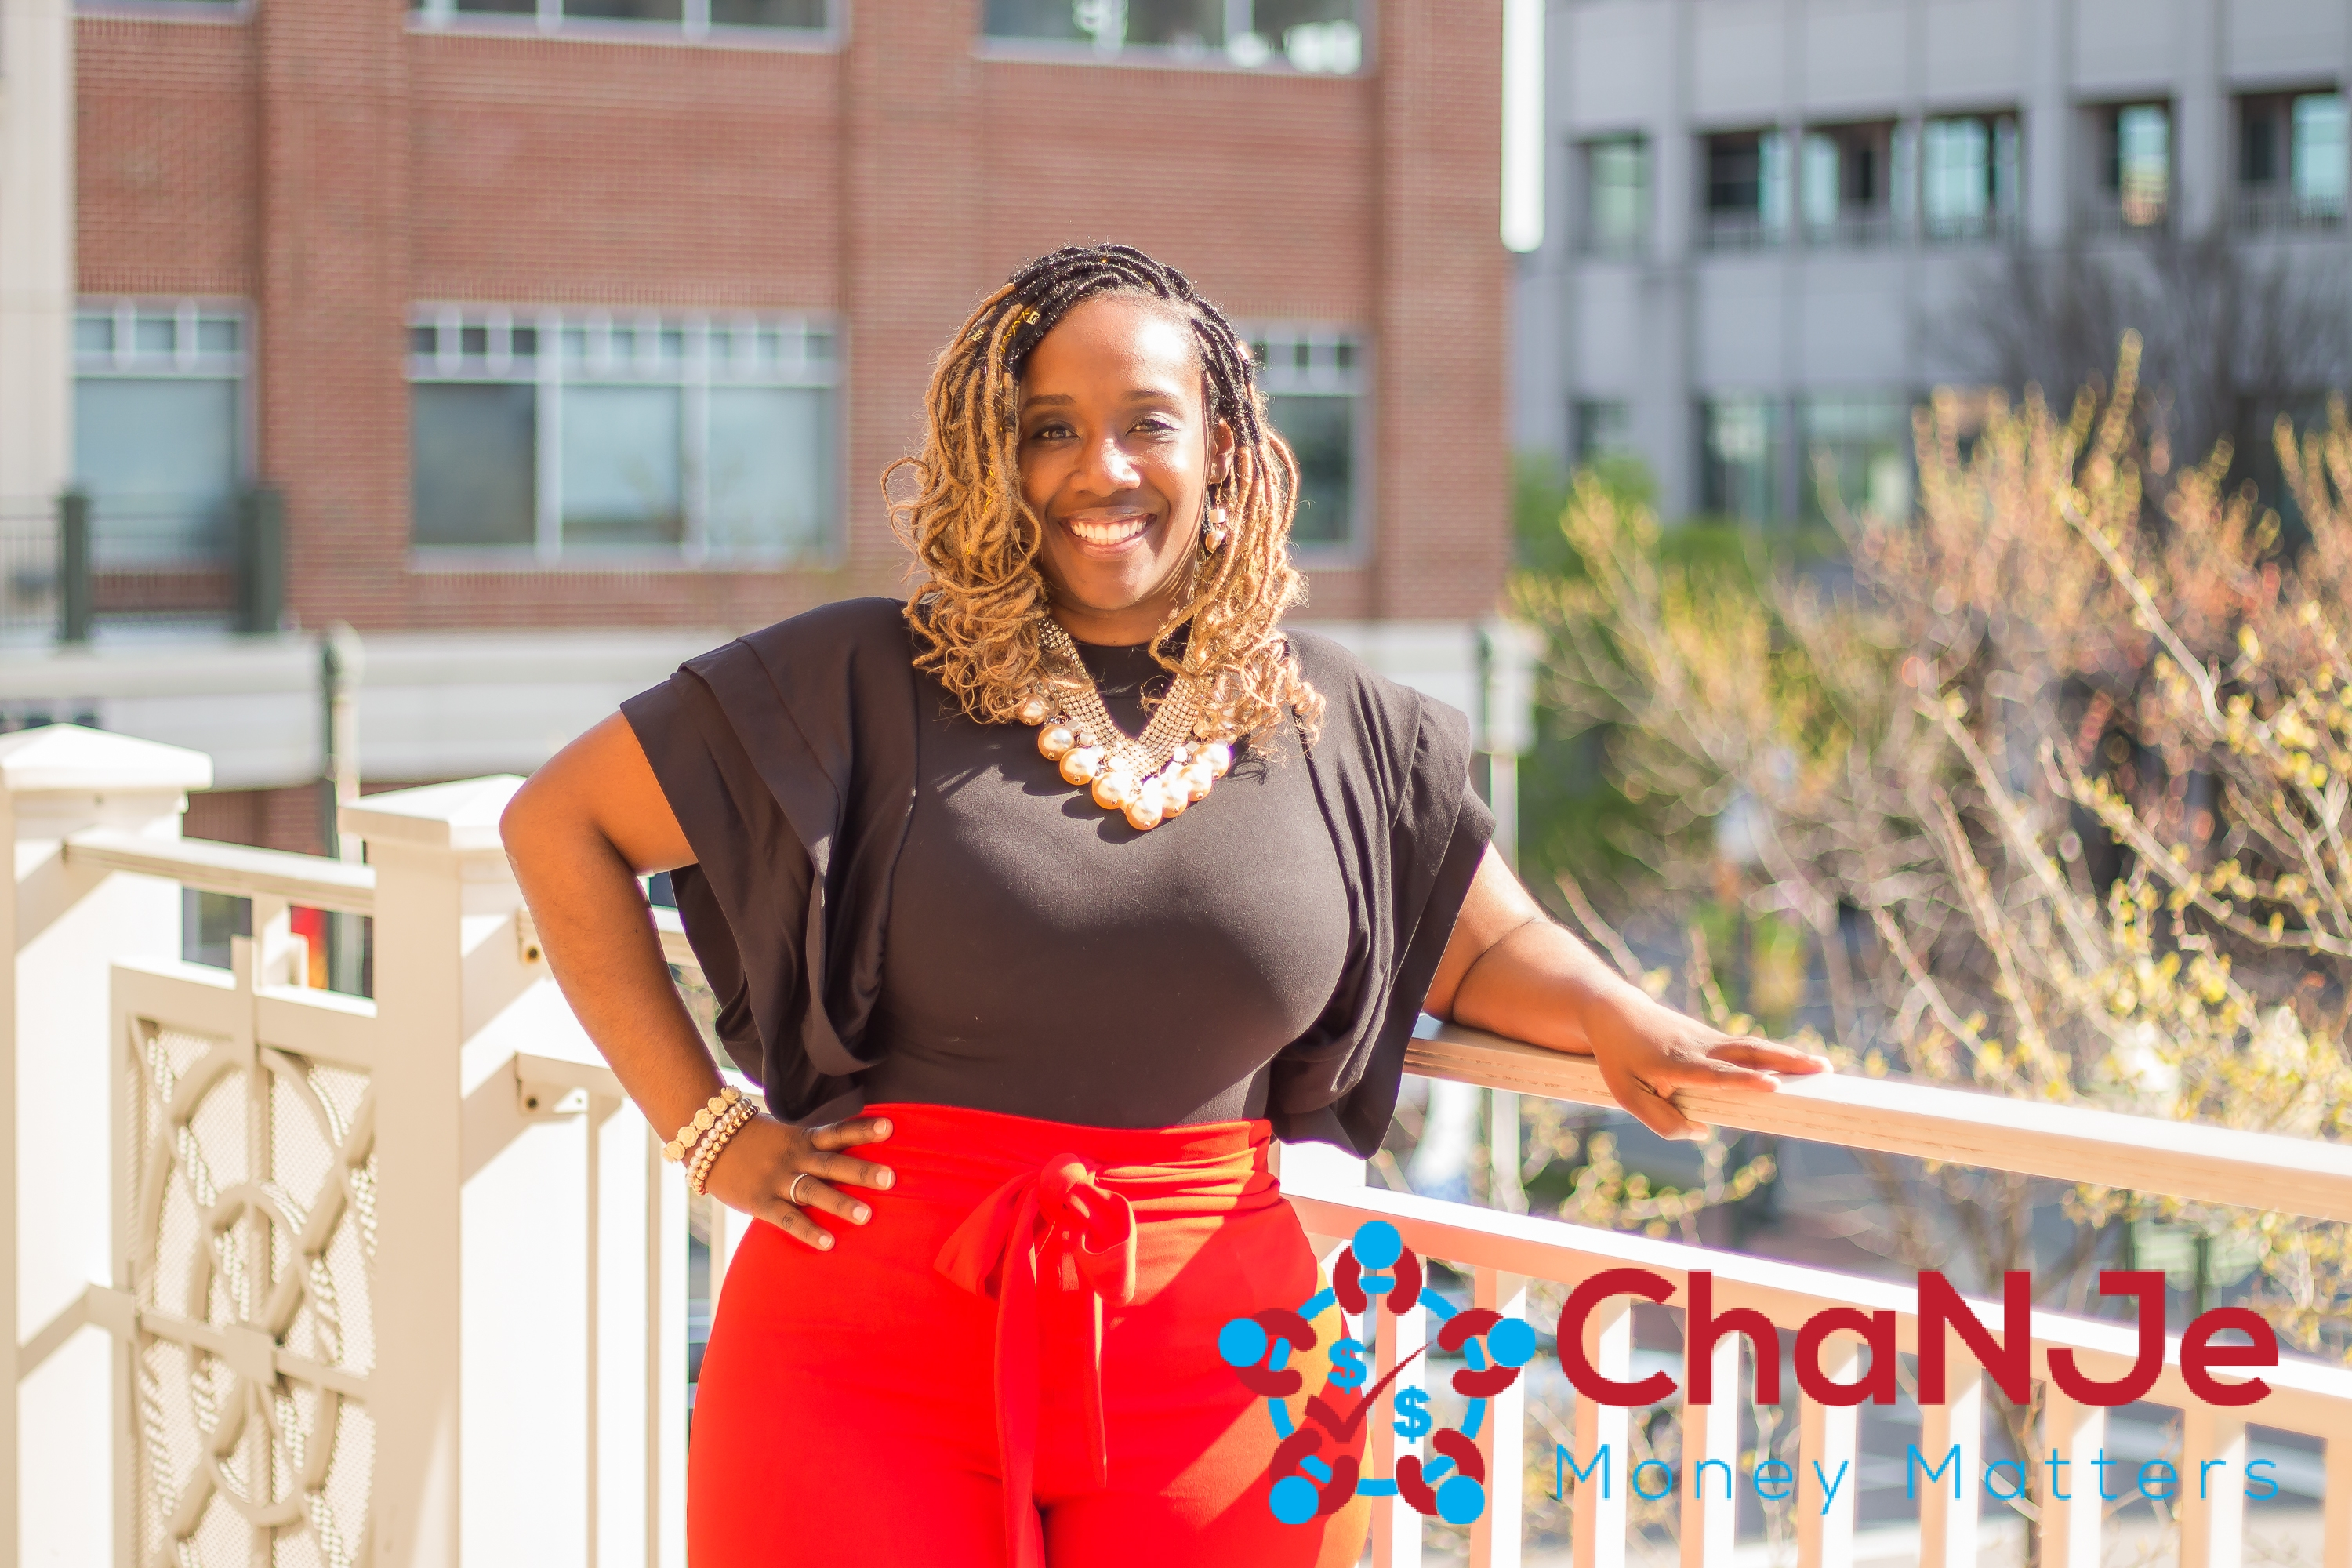 Meet the face behind ChaNJe Money Matters